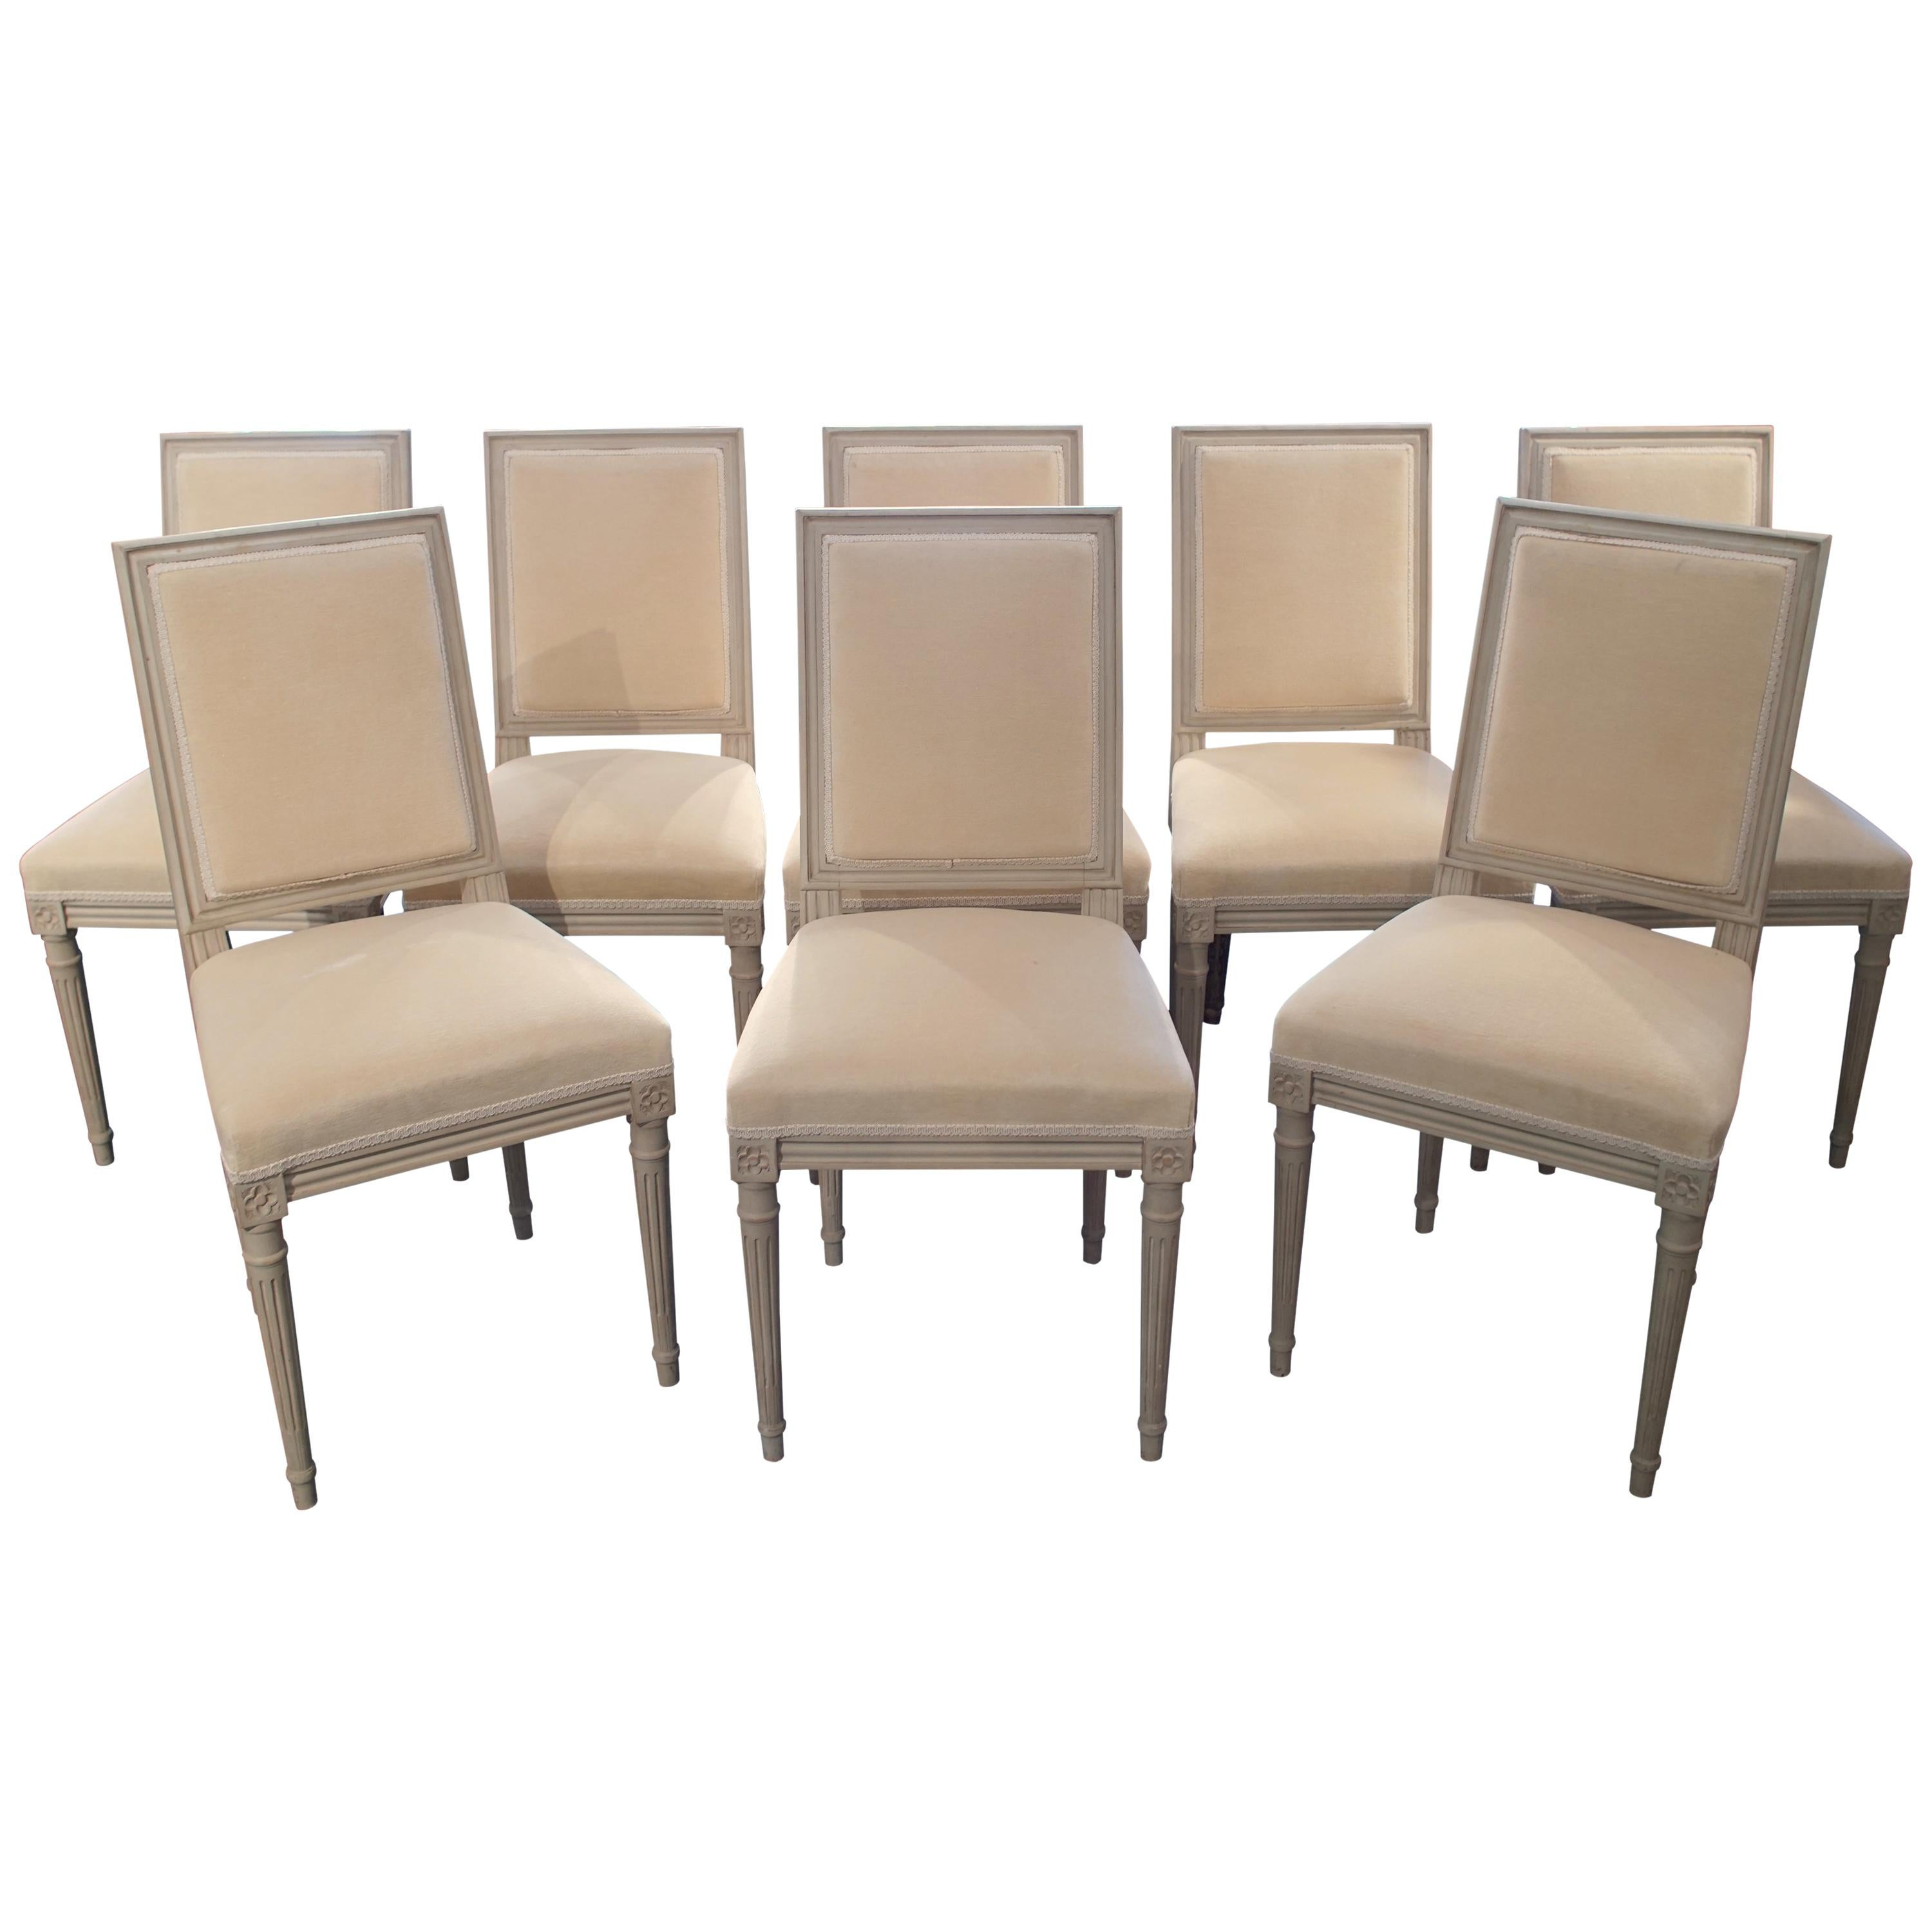 Set of 8 Louis XVI Style Chairs